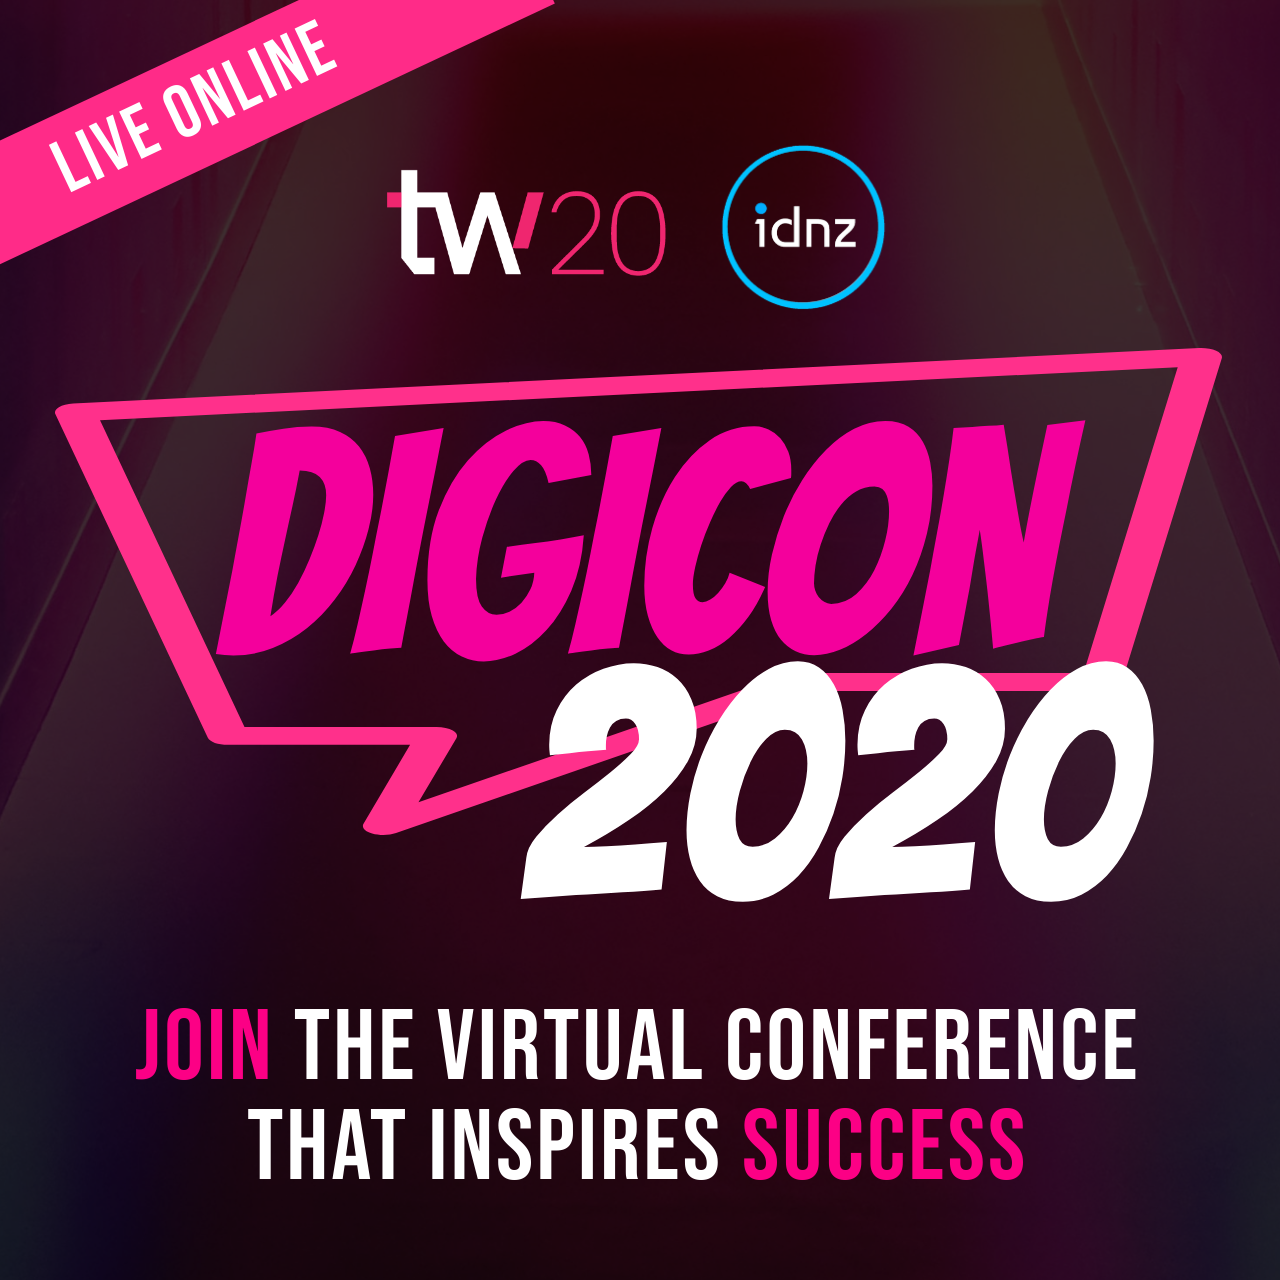 For the first time in New Zealand, IDNZ brings you DIGICON 2020 online in conjunction with Techweek NZ - featuring up to 5 speakers each day for 3 days, covering 3 special topics to celebrate success from 29-31 July 2020, 9am-12pm NZT!